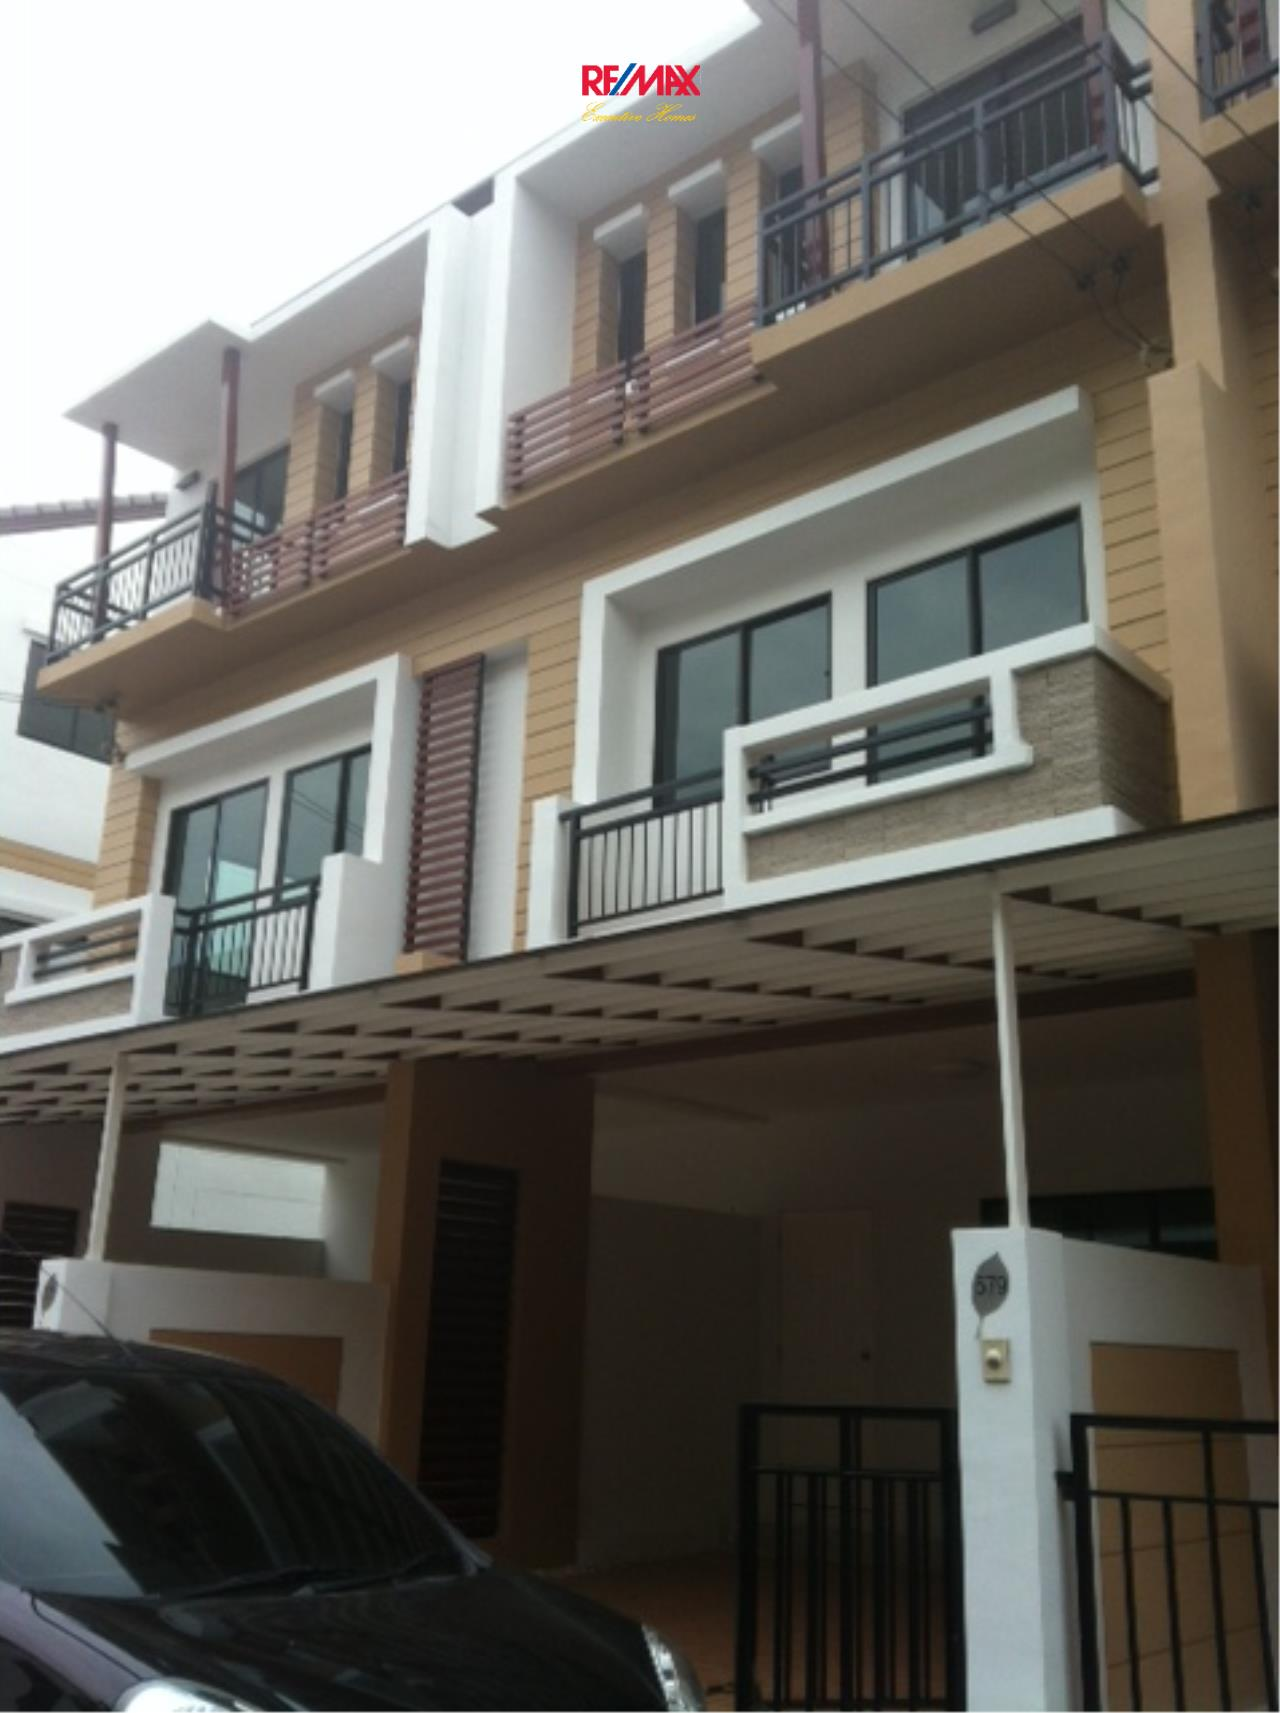 RE/MAX Executive Homes Agency's Nice 3 Bedroom House for Sale Moo Baan Time Home 4